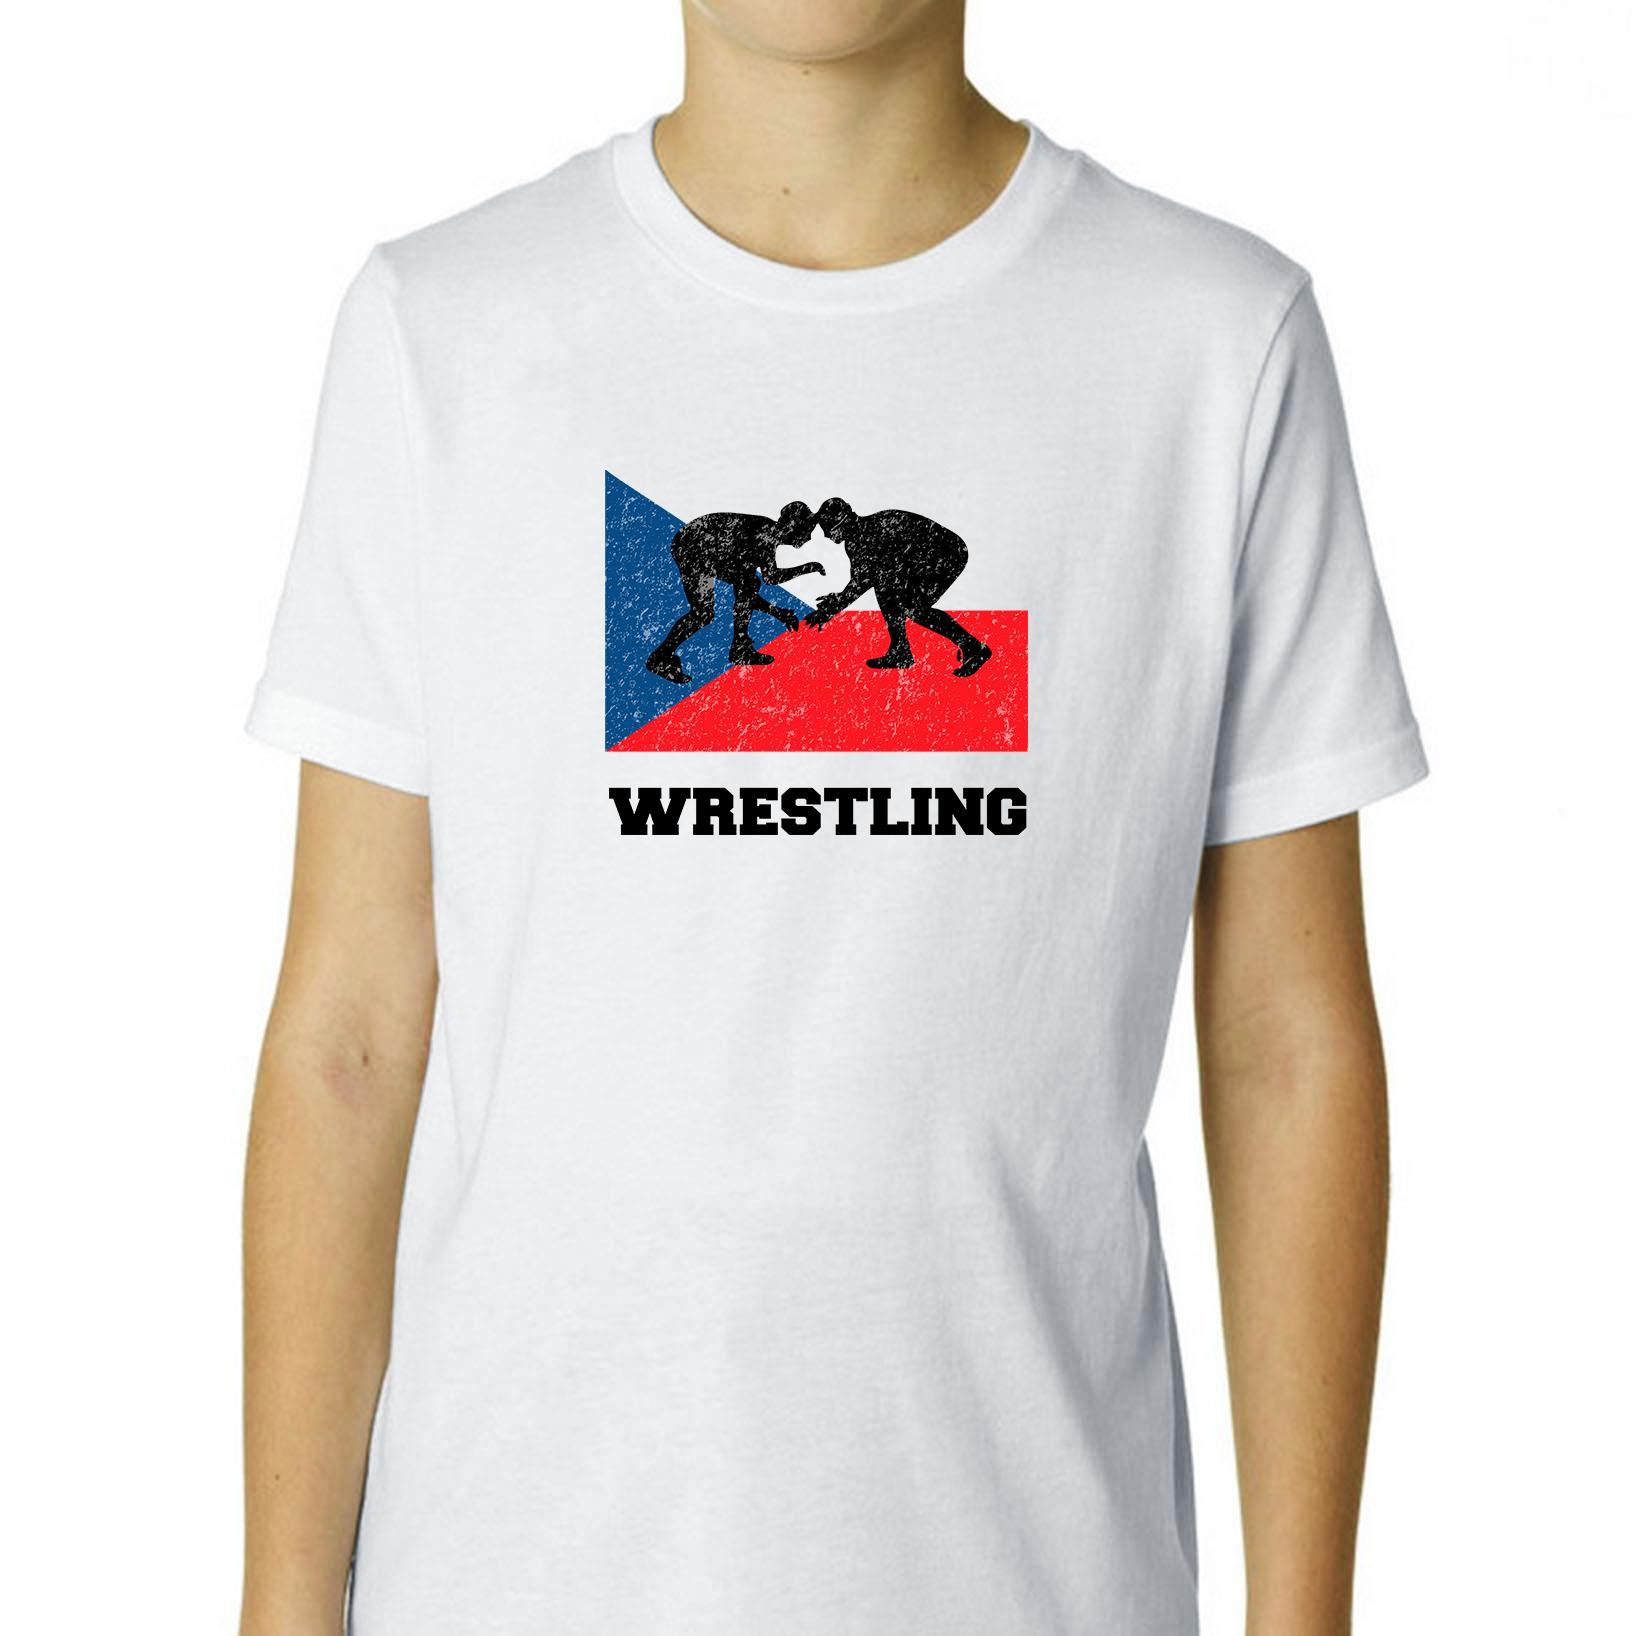 Czech Republic Olympic Wrestling Flag Silhouette Boy's Cotton Youth T-Shirt by Hollywood Thread